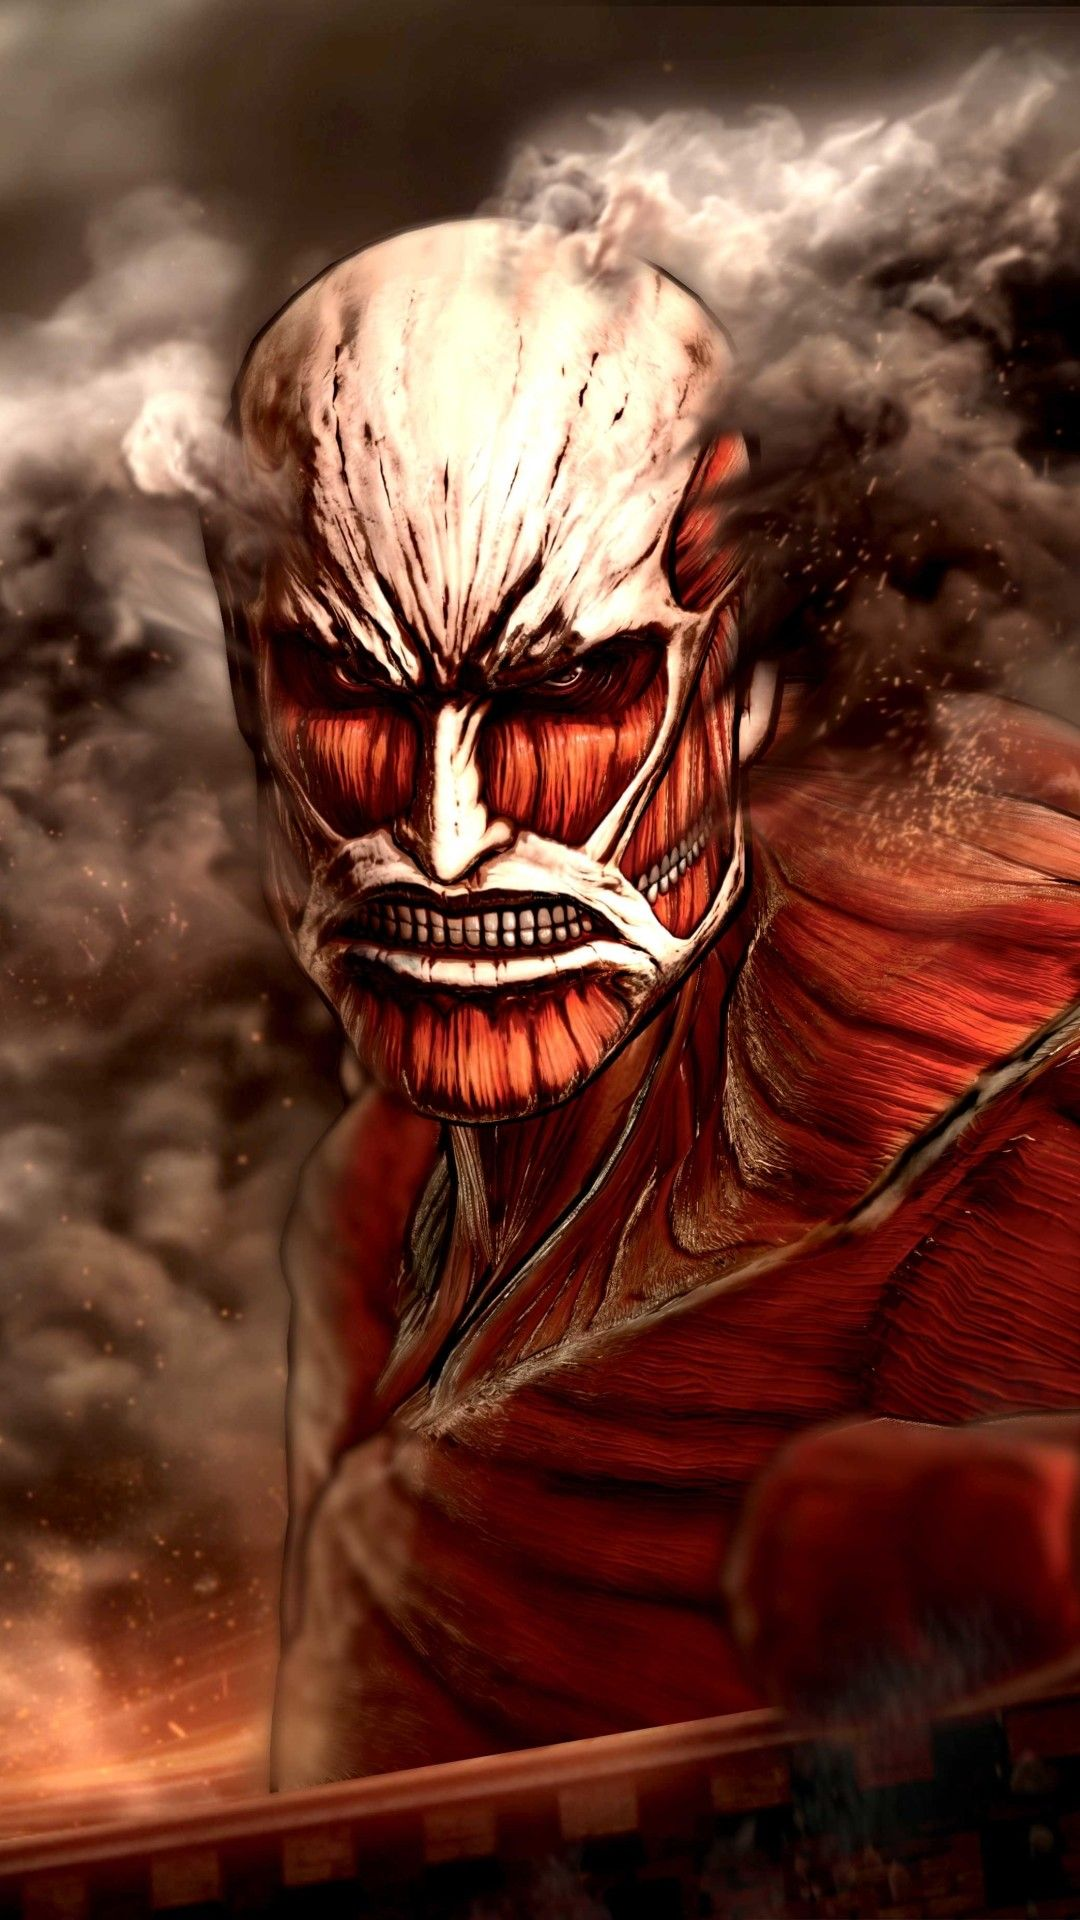 1080x1920 Wallpaper 643452 Attack on titan anime, Attack